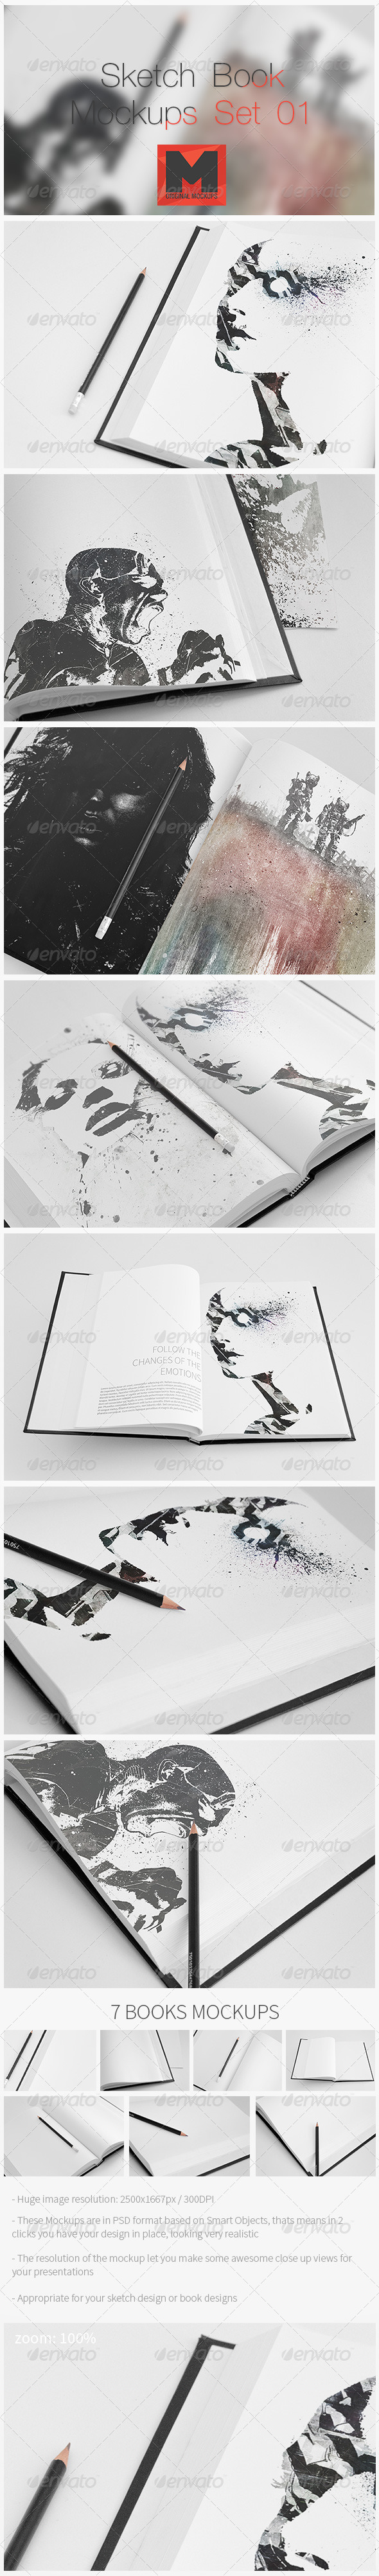 GraphicRiver Sketch Book Mock-Ups Set 01 4682220